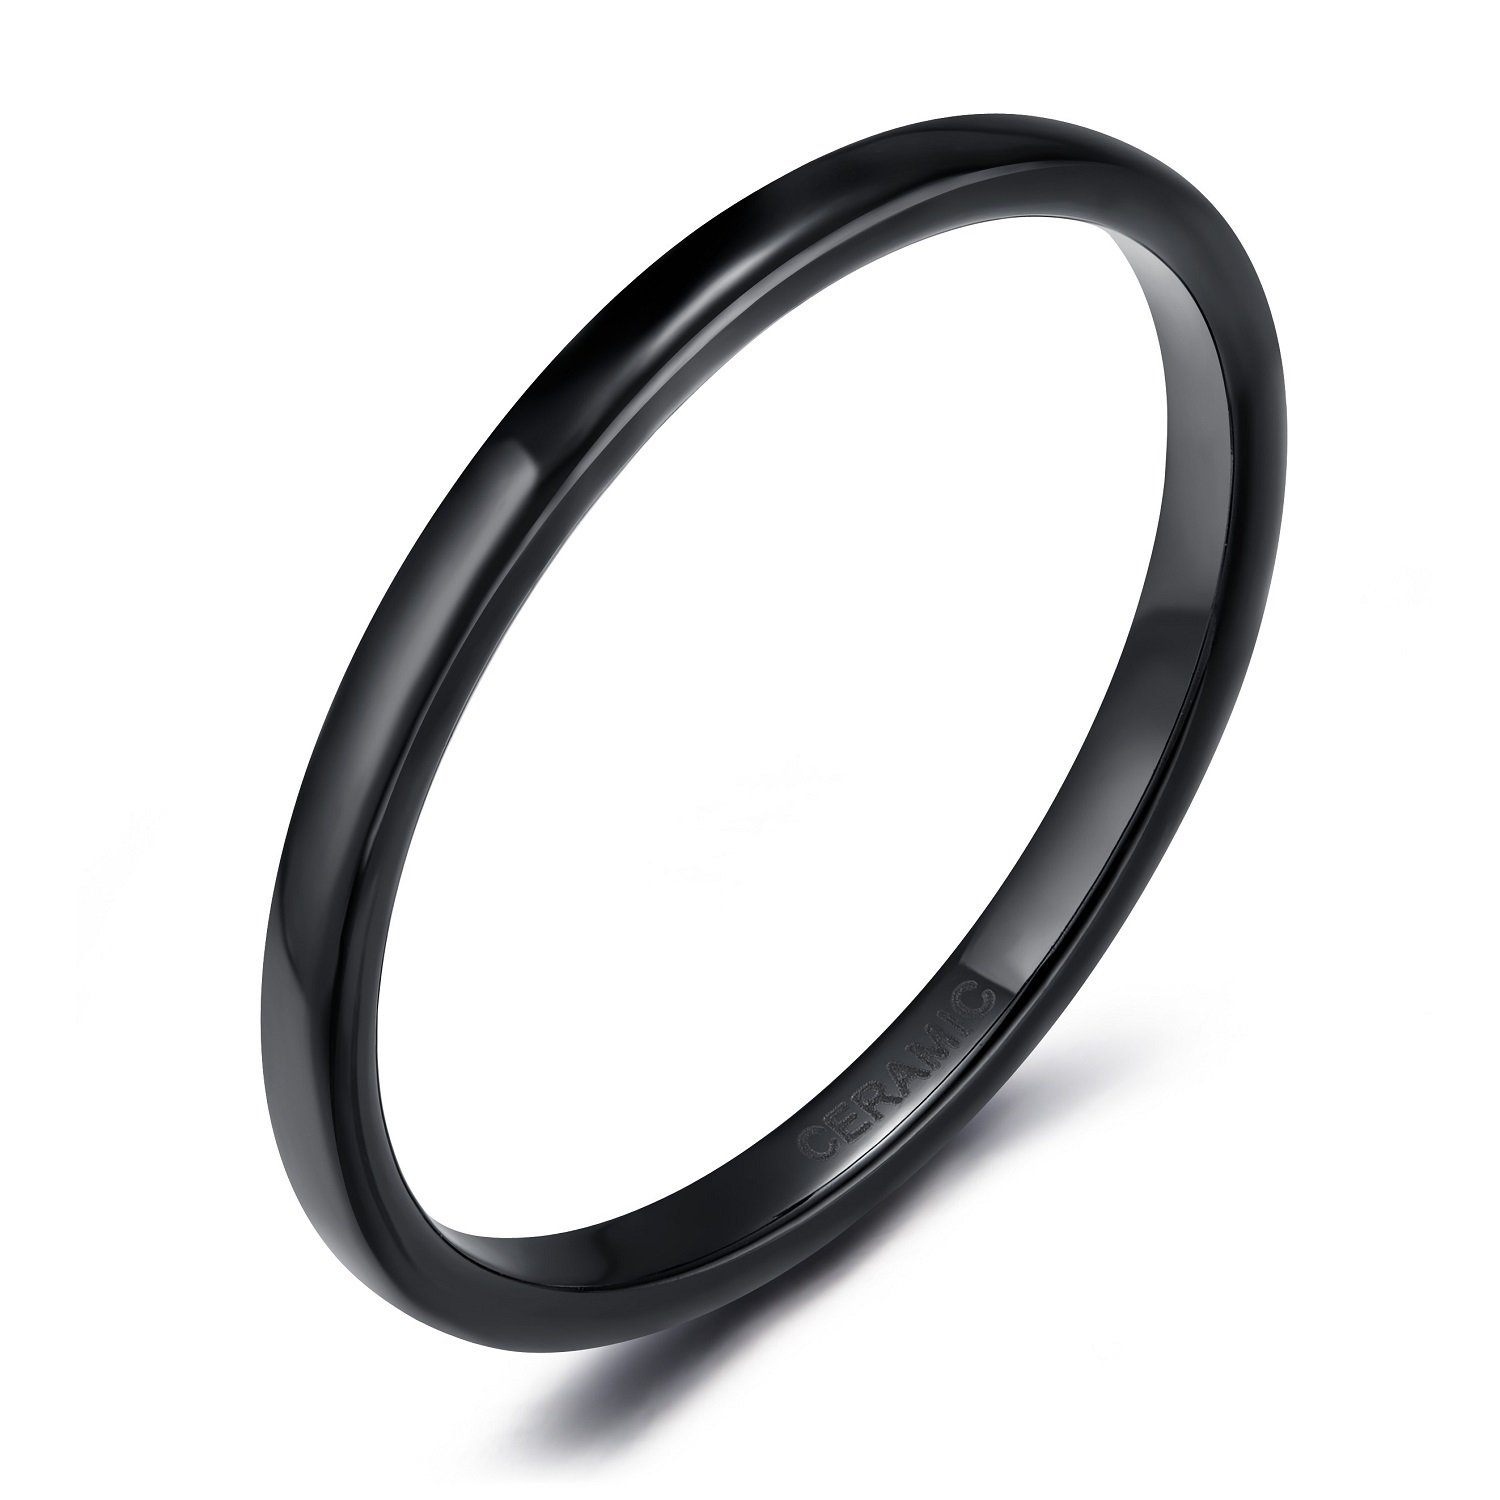 SOMEN TUNGSTEN 2mm 4mm 6mm Black/White Ceramic Rings for Men Women Comfort Fit Engagement Wedding Band Size 4-12 by SOMEN TUNGSTEN (Image #1)